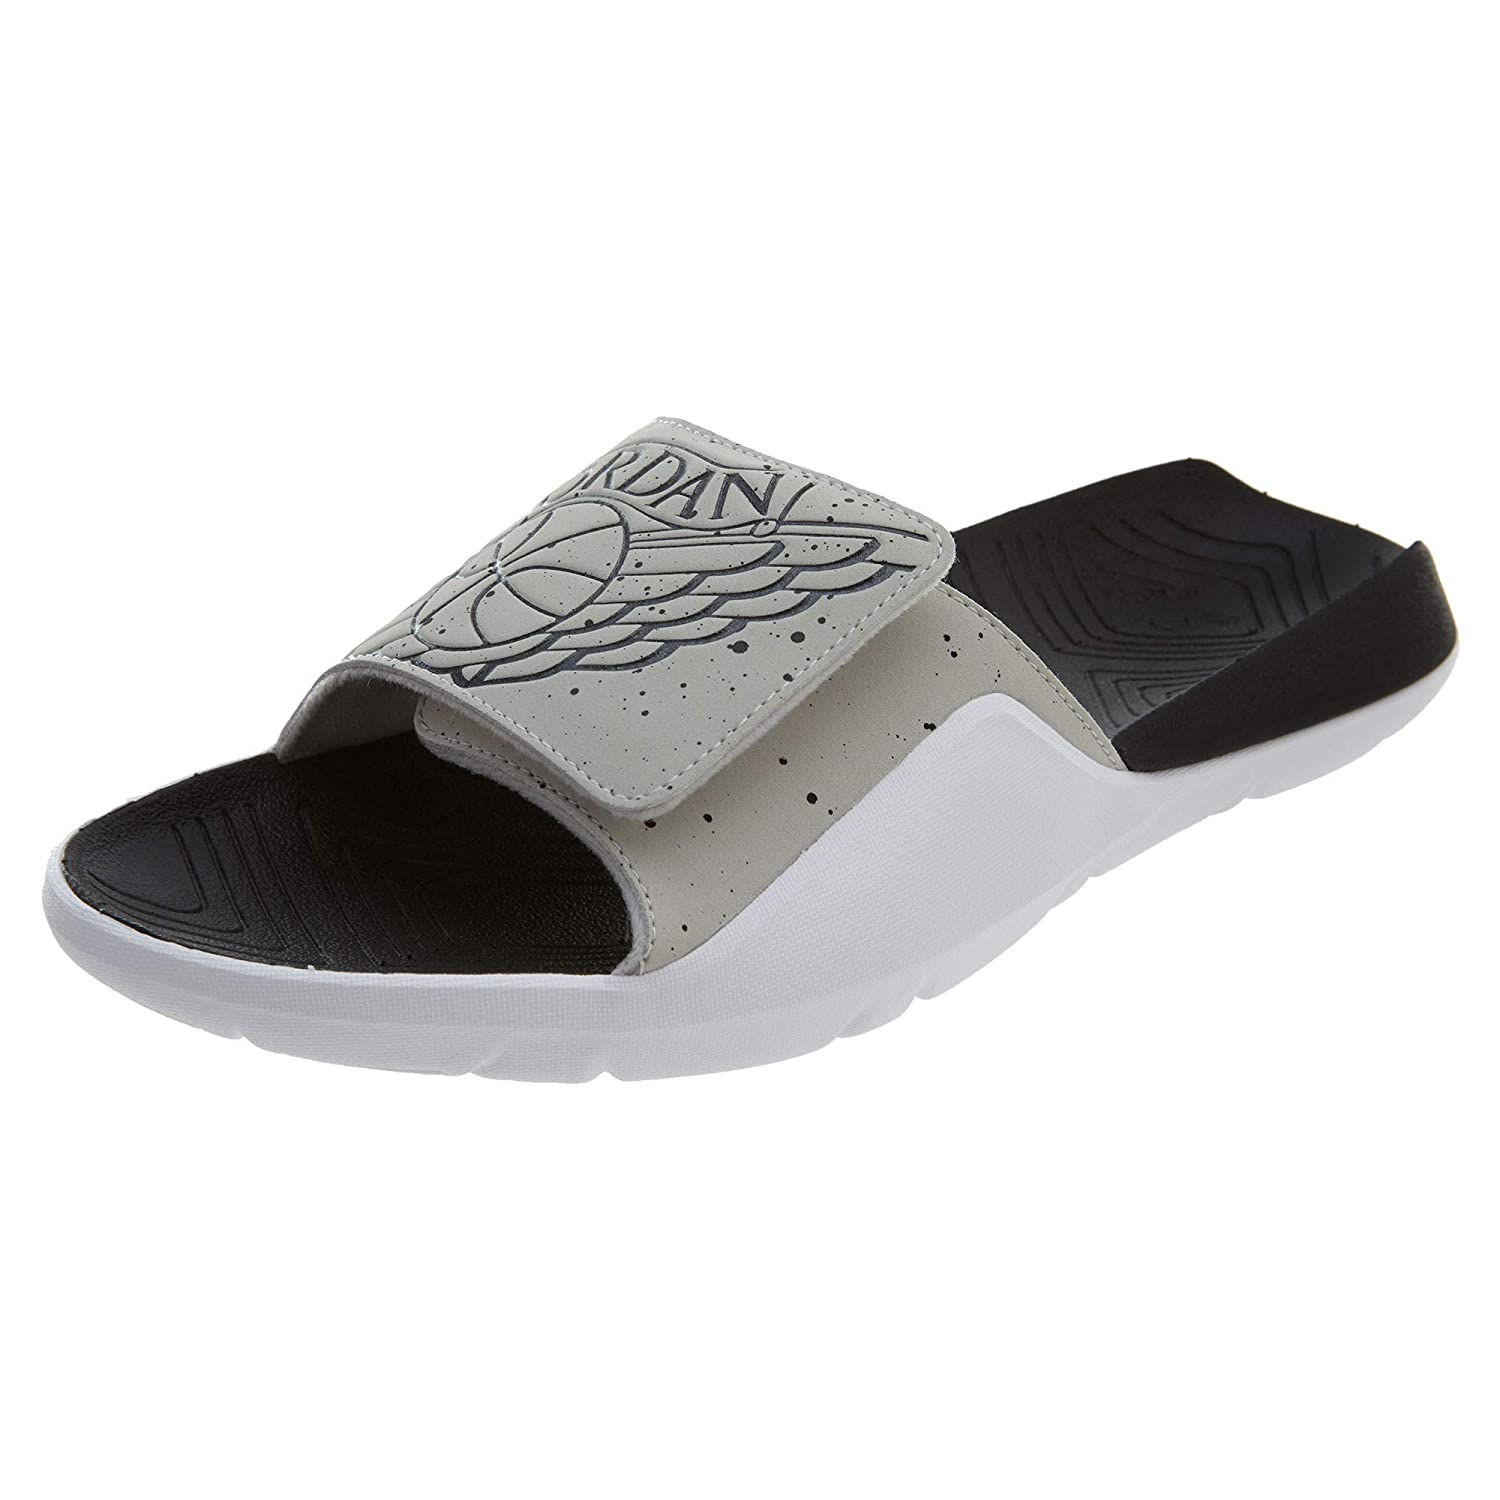 0bbb87f87ec Amazon.com | Jordan Hydro 7 Slides 'Tech Grey' Style: AA2517-004 Size: 14 |  Sandals